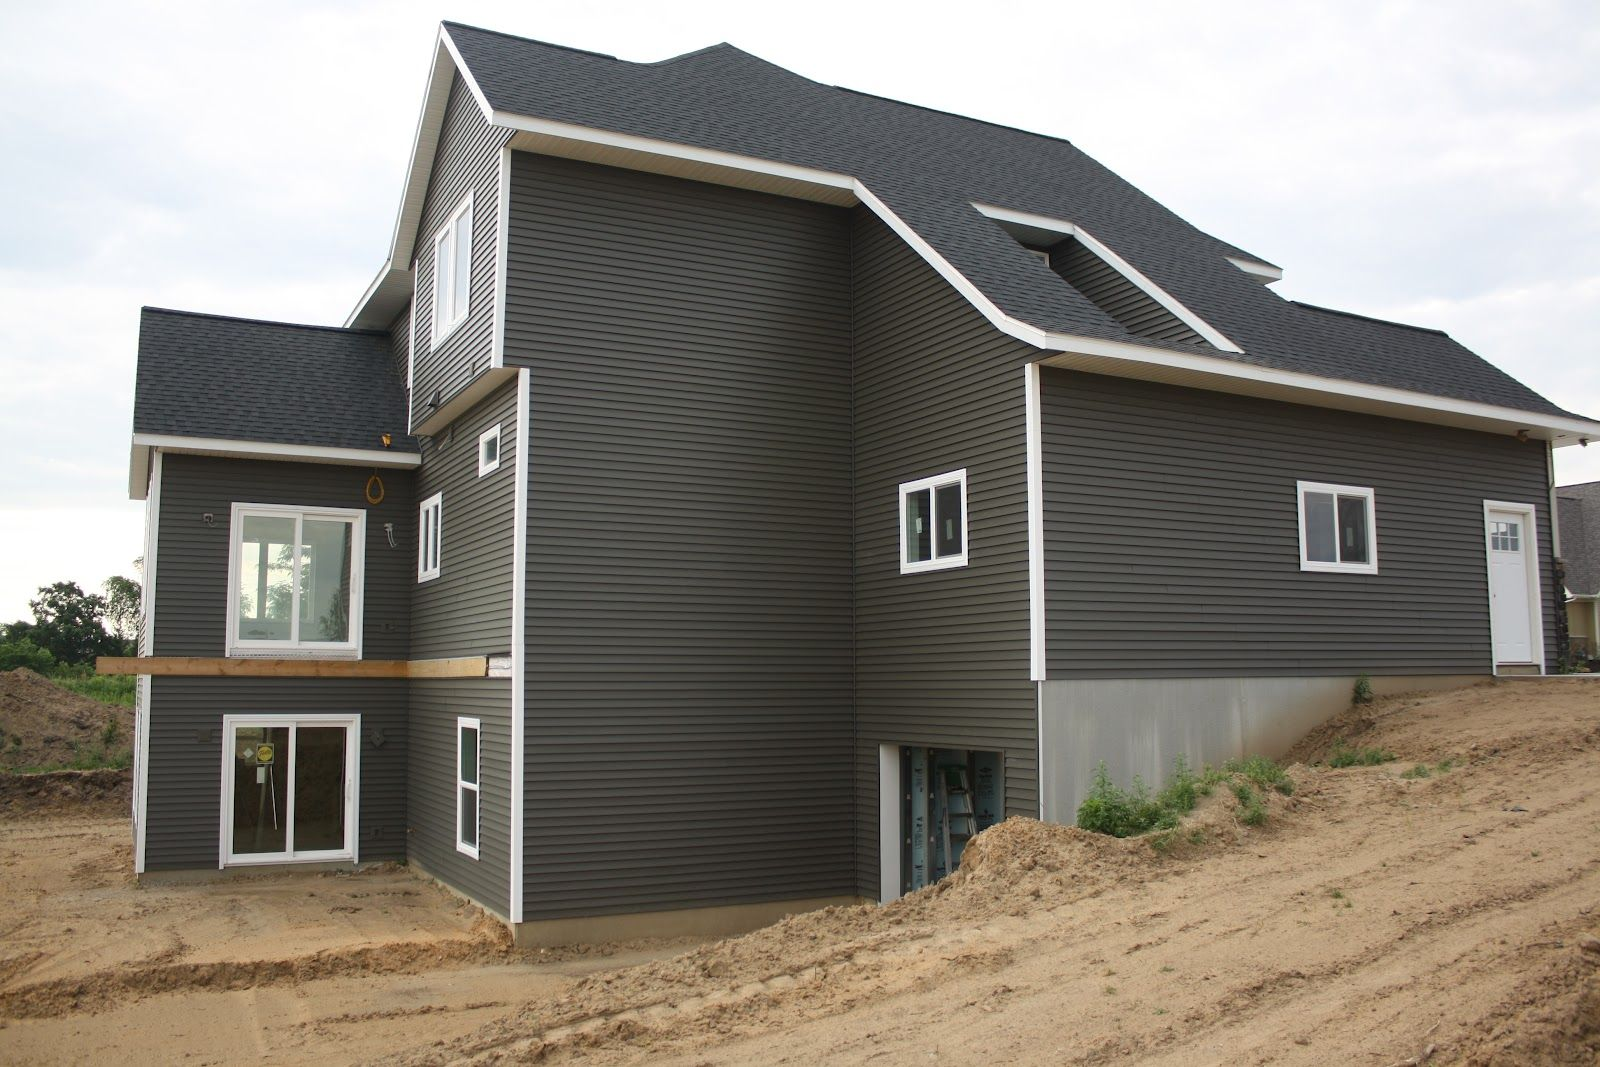 House on tufton the build exterior stone siding and for Vinyl siding colors on houses